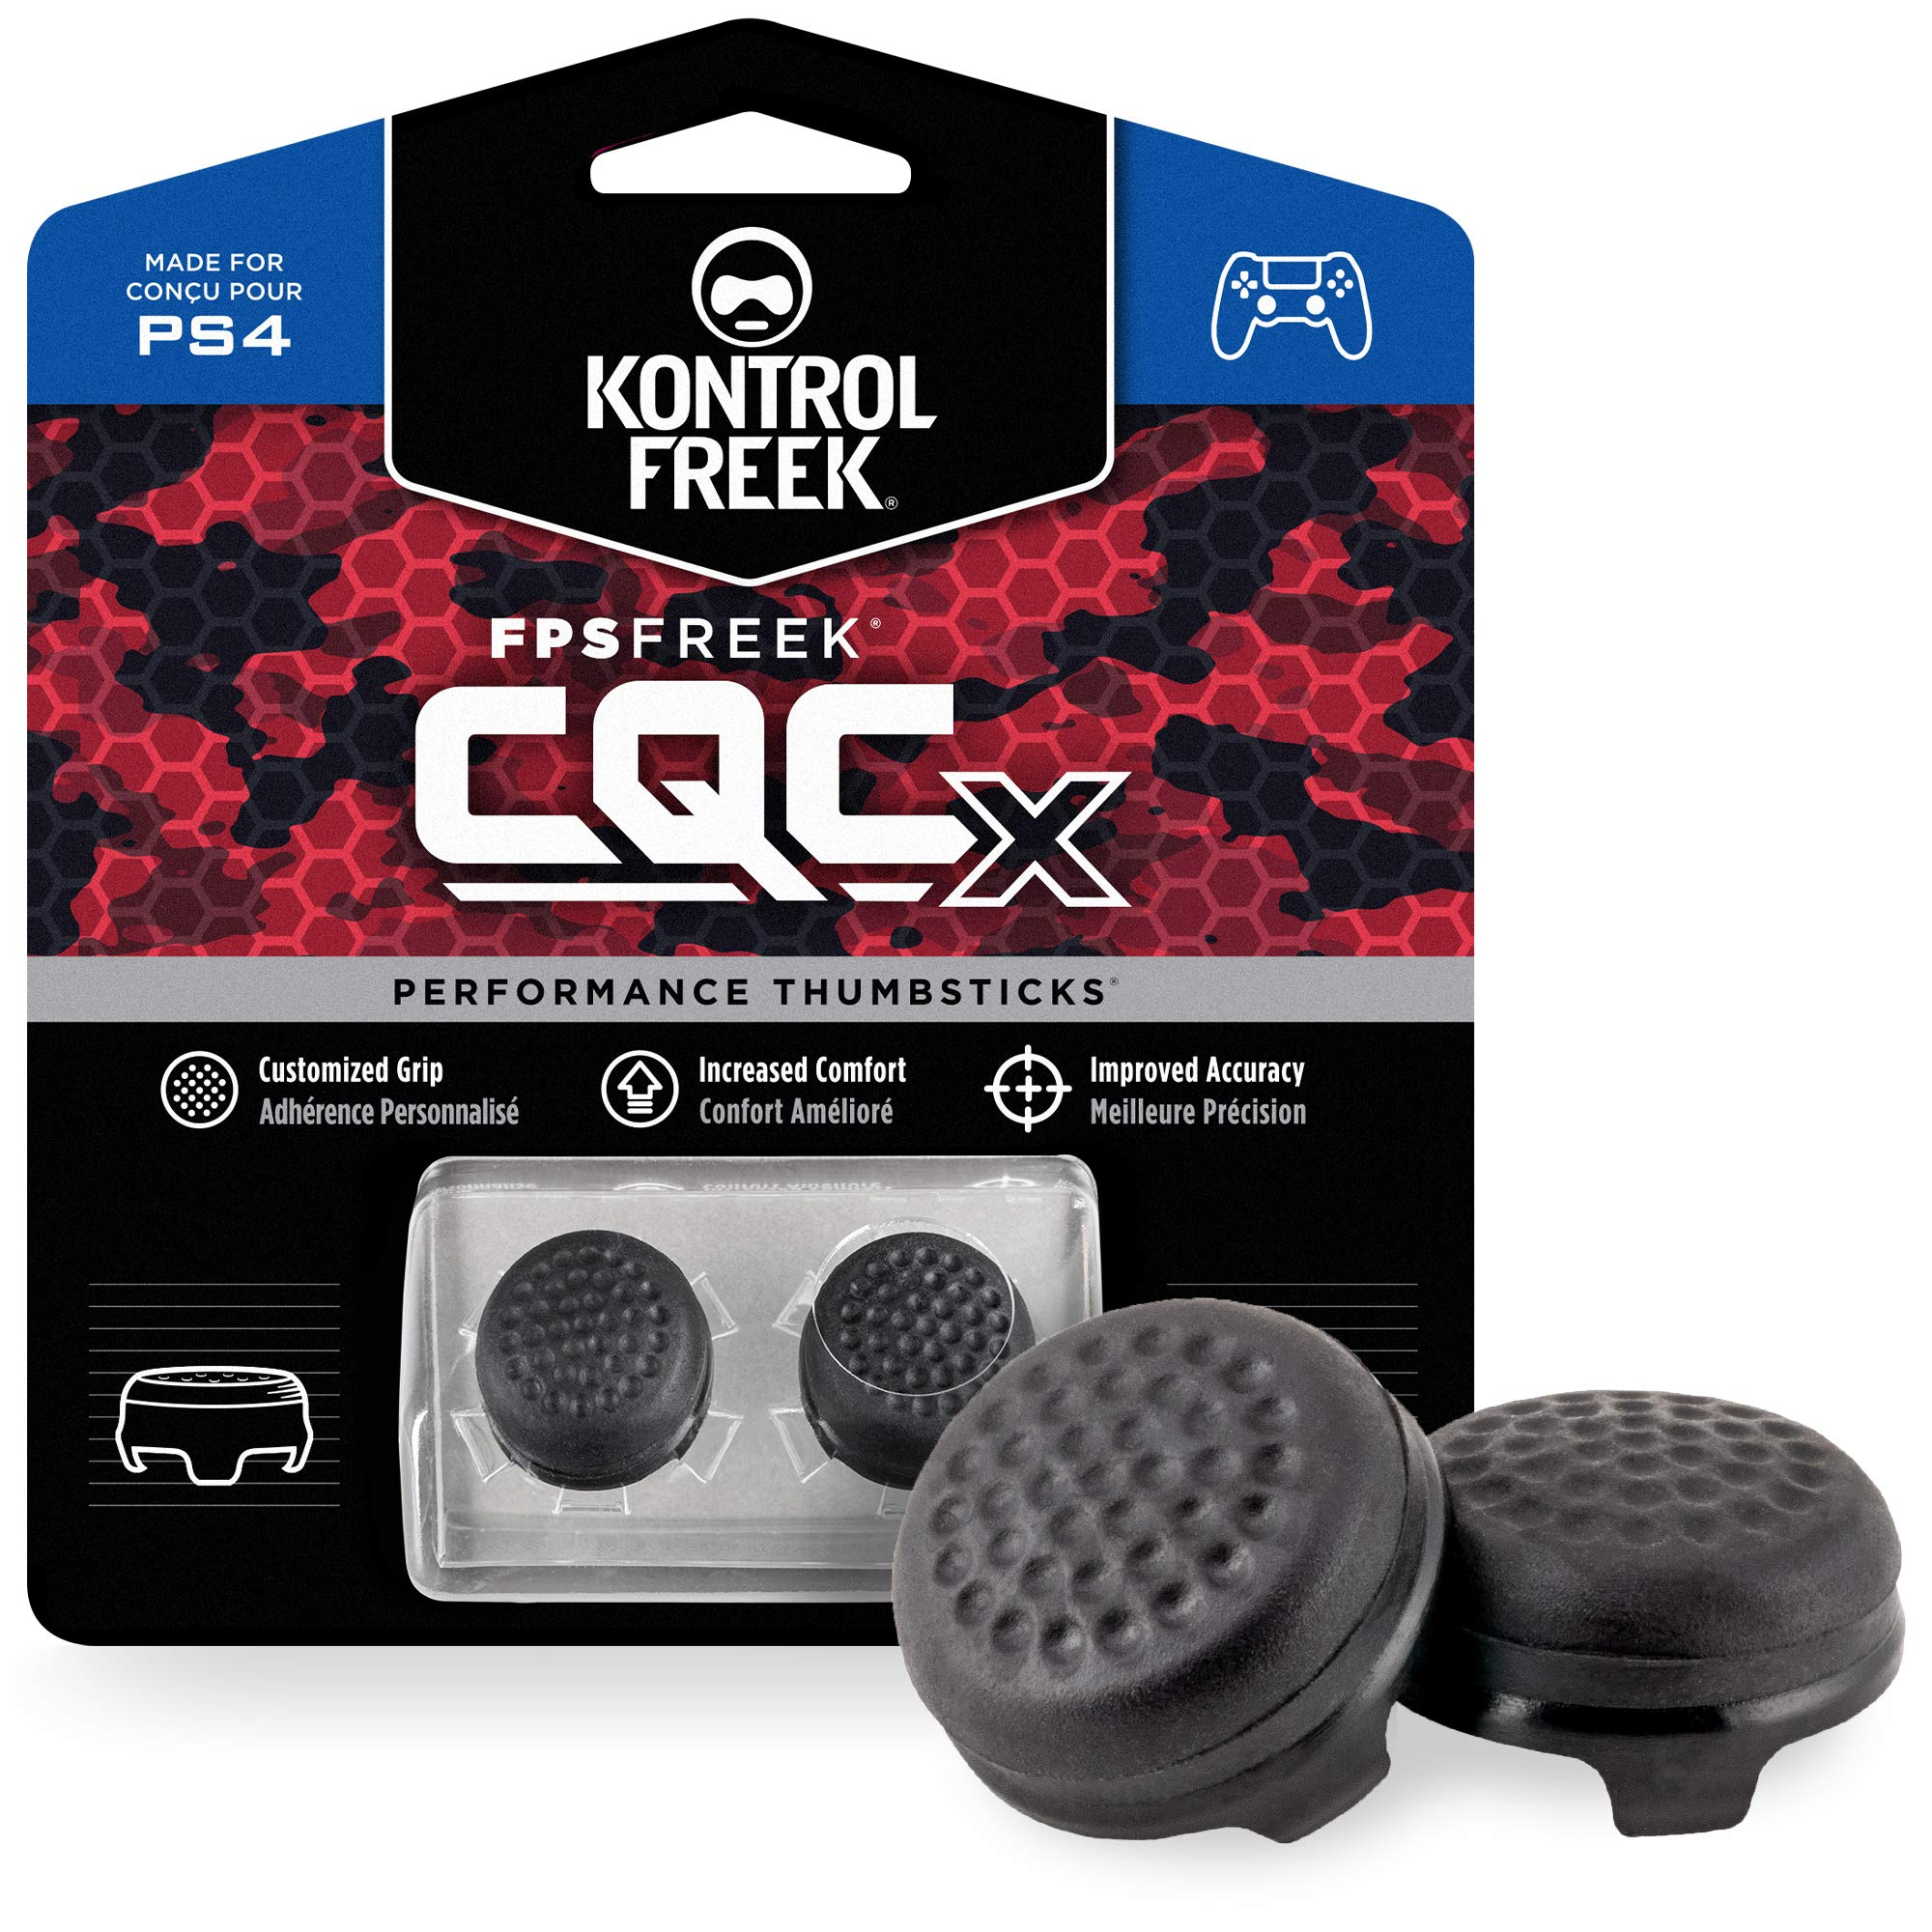 KontrolFreek CQCX Thumb Grips for PlayStation 4 Controller (PS4) and PlayStation 5 (PS5) | 2 Mid-Rise Convex Performance Thumbsticks | Black